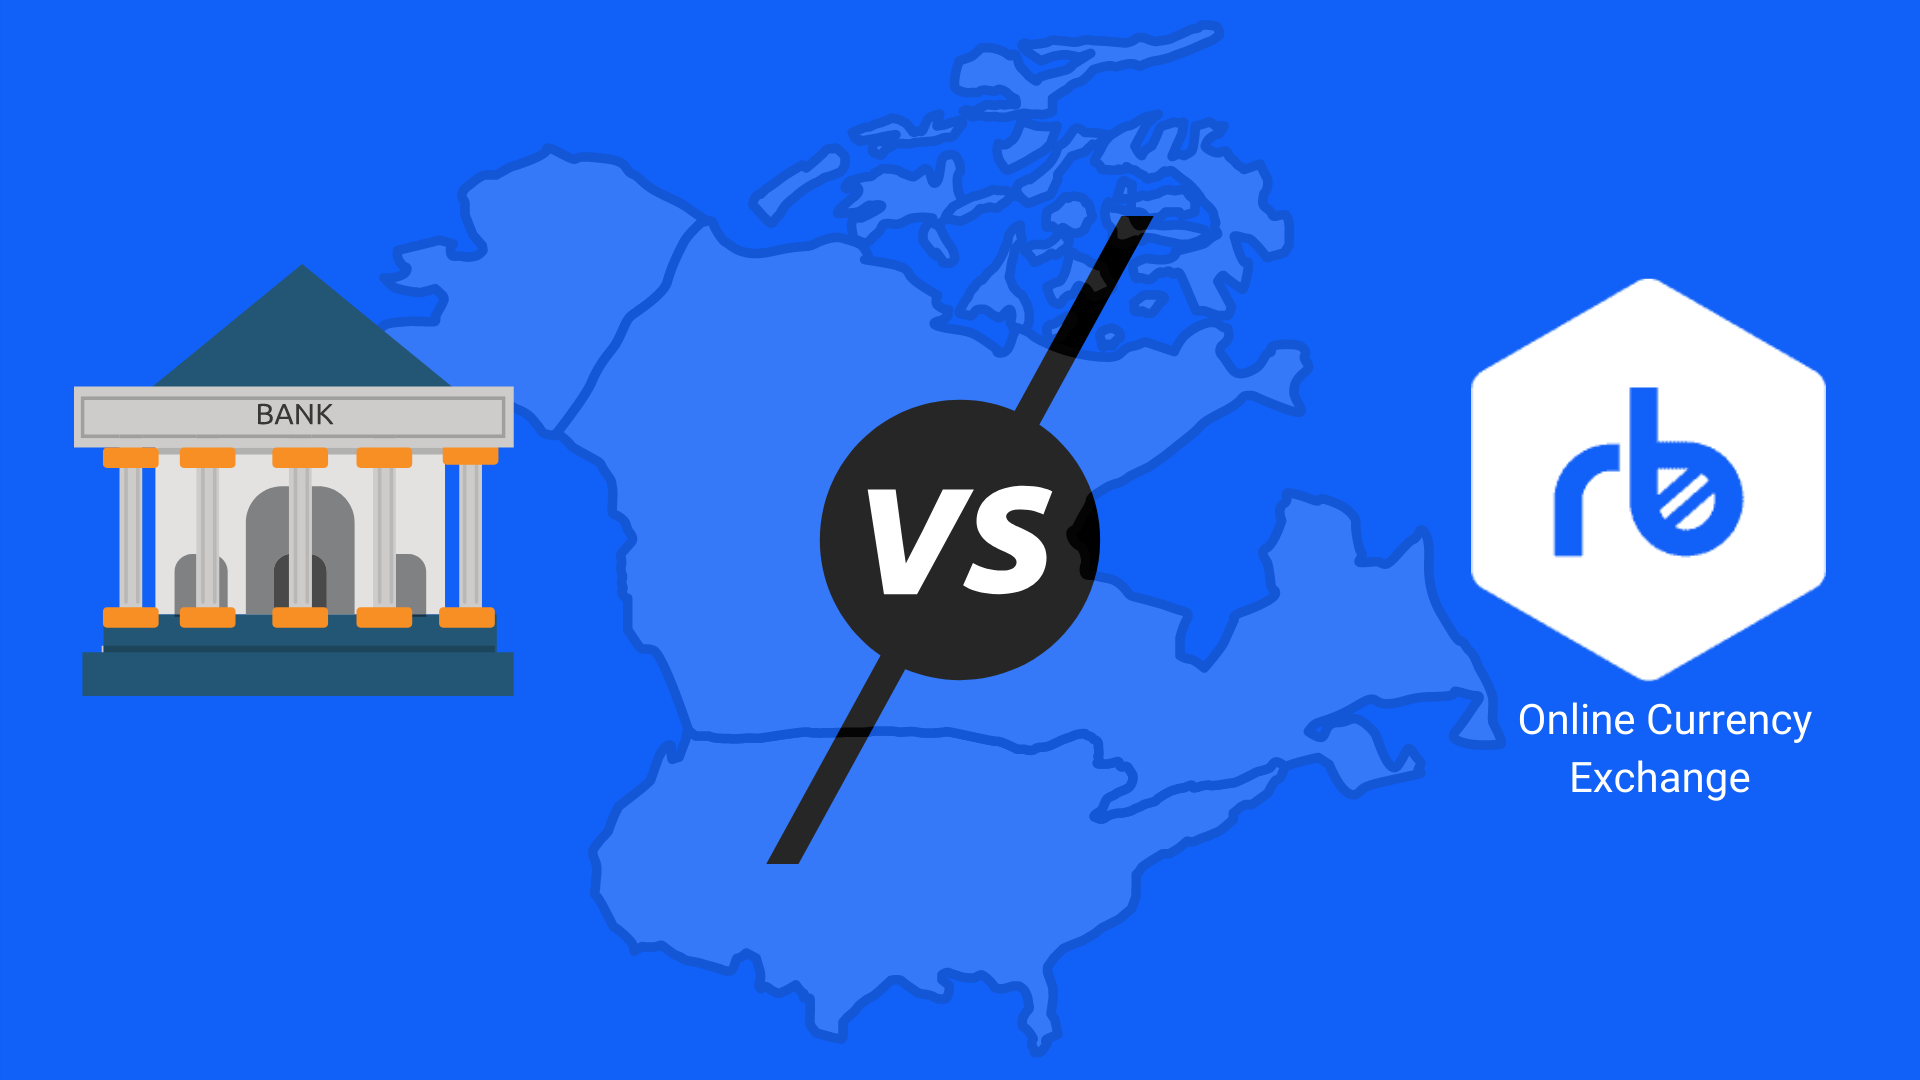 Currency Exchange USD and CAD: Remitbee Currency Exchange Vs Banks